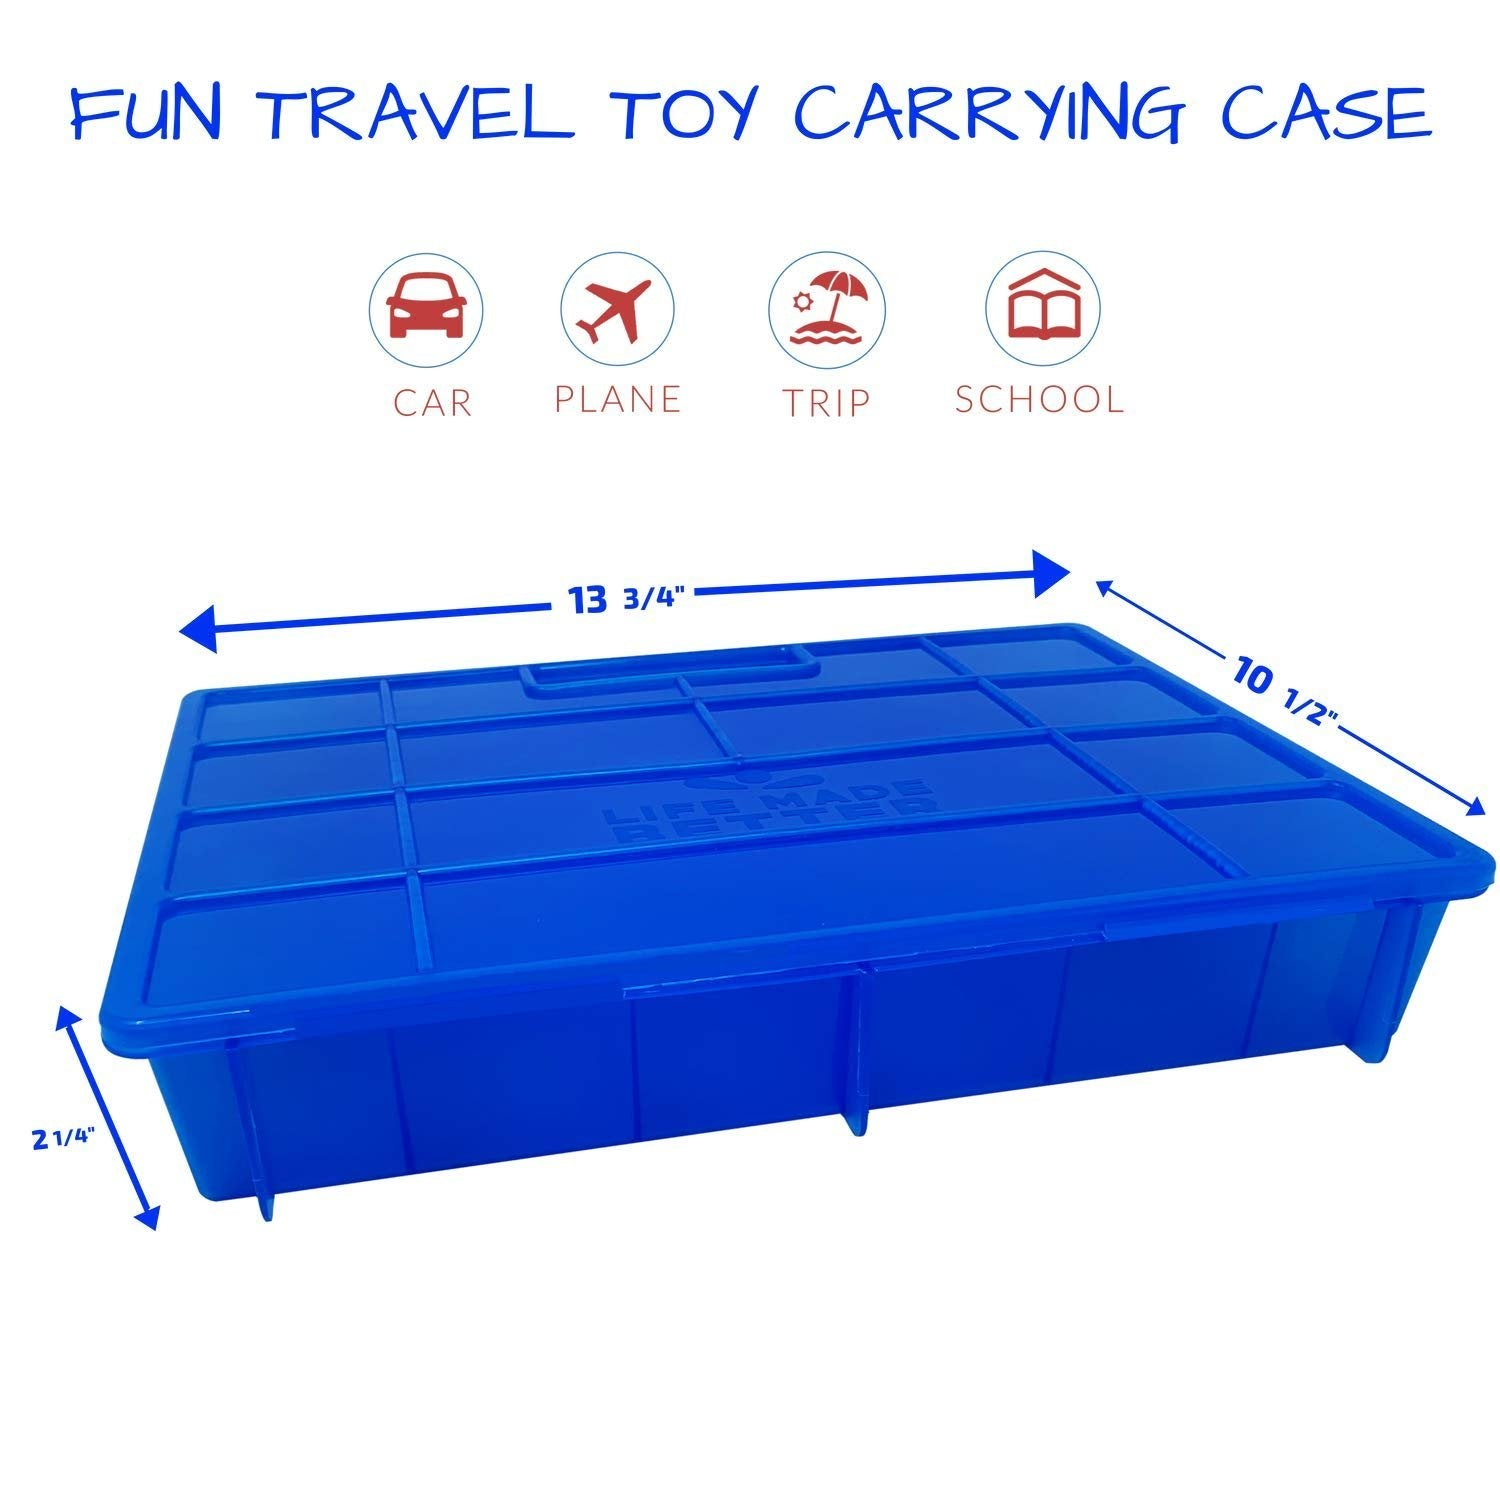 Life Made Better Toy Storage, Carrying, and Travel Case in Blue, Compatible with Transformer BotBot Figurines, Includes Pre-Cut Compartments, Secure Clasp System, and Built-in Carrying Handle